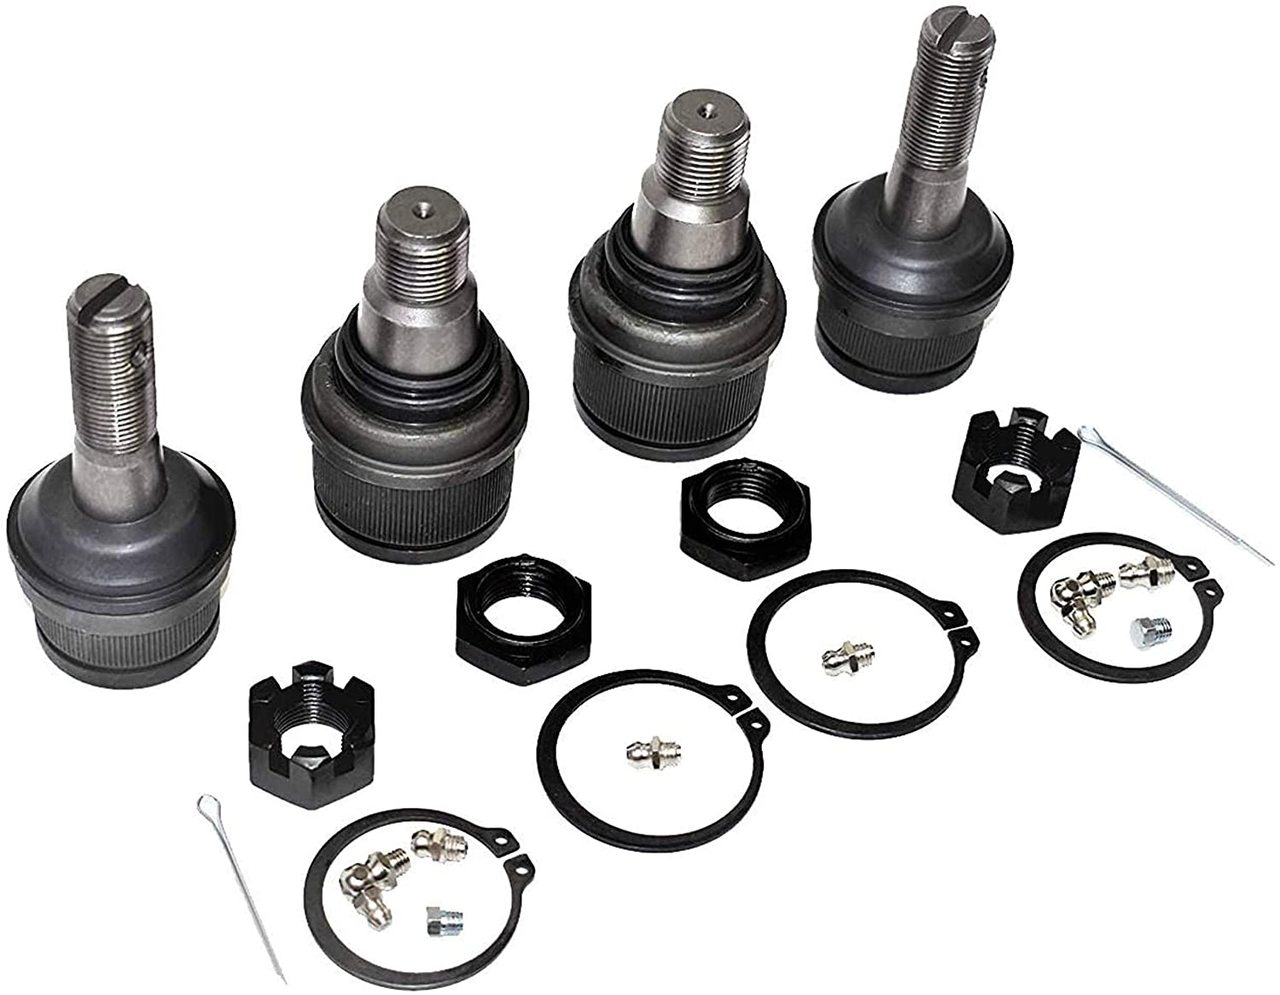 A-Team Performance Ford EXCURSION 4X4 F250 F350 Super Duty UPPER & LOWER BALL JOINTS 99-06